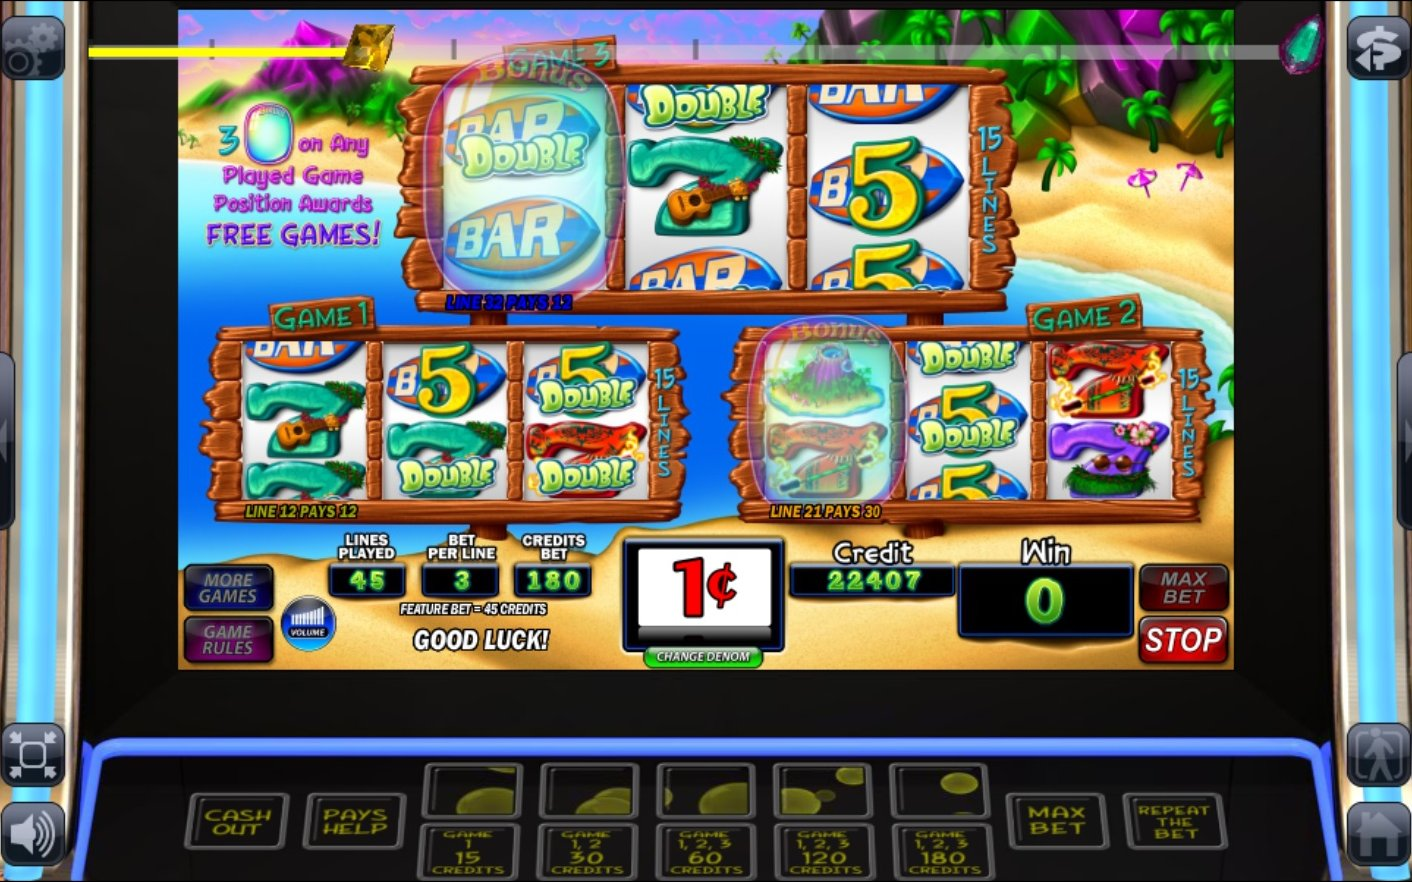 Billy Goat Bucks Slots - Free Billy Goat Bucks Slot Machine